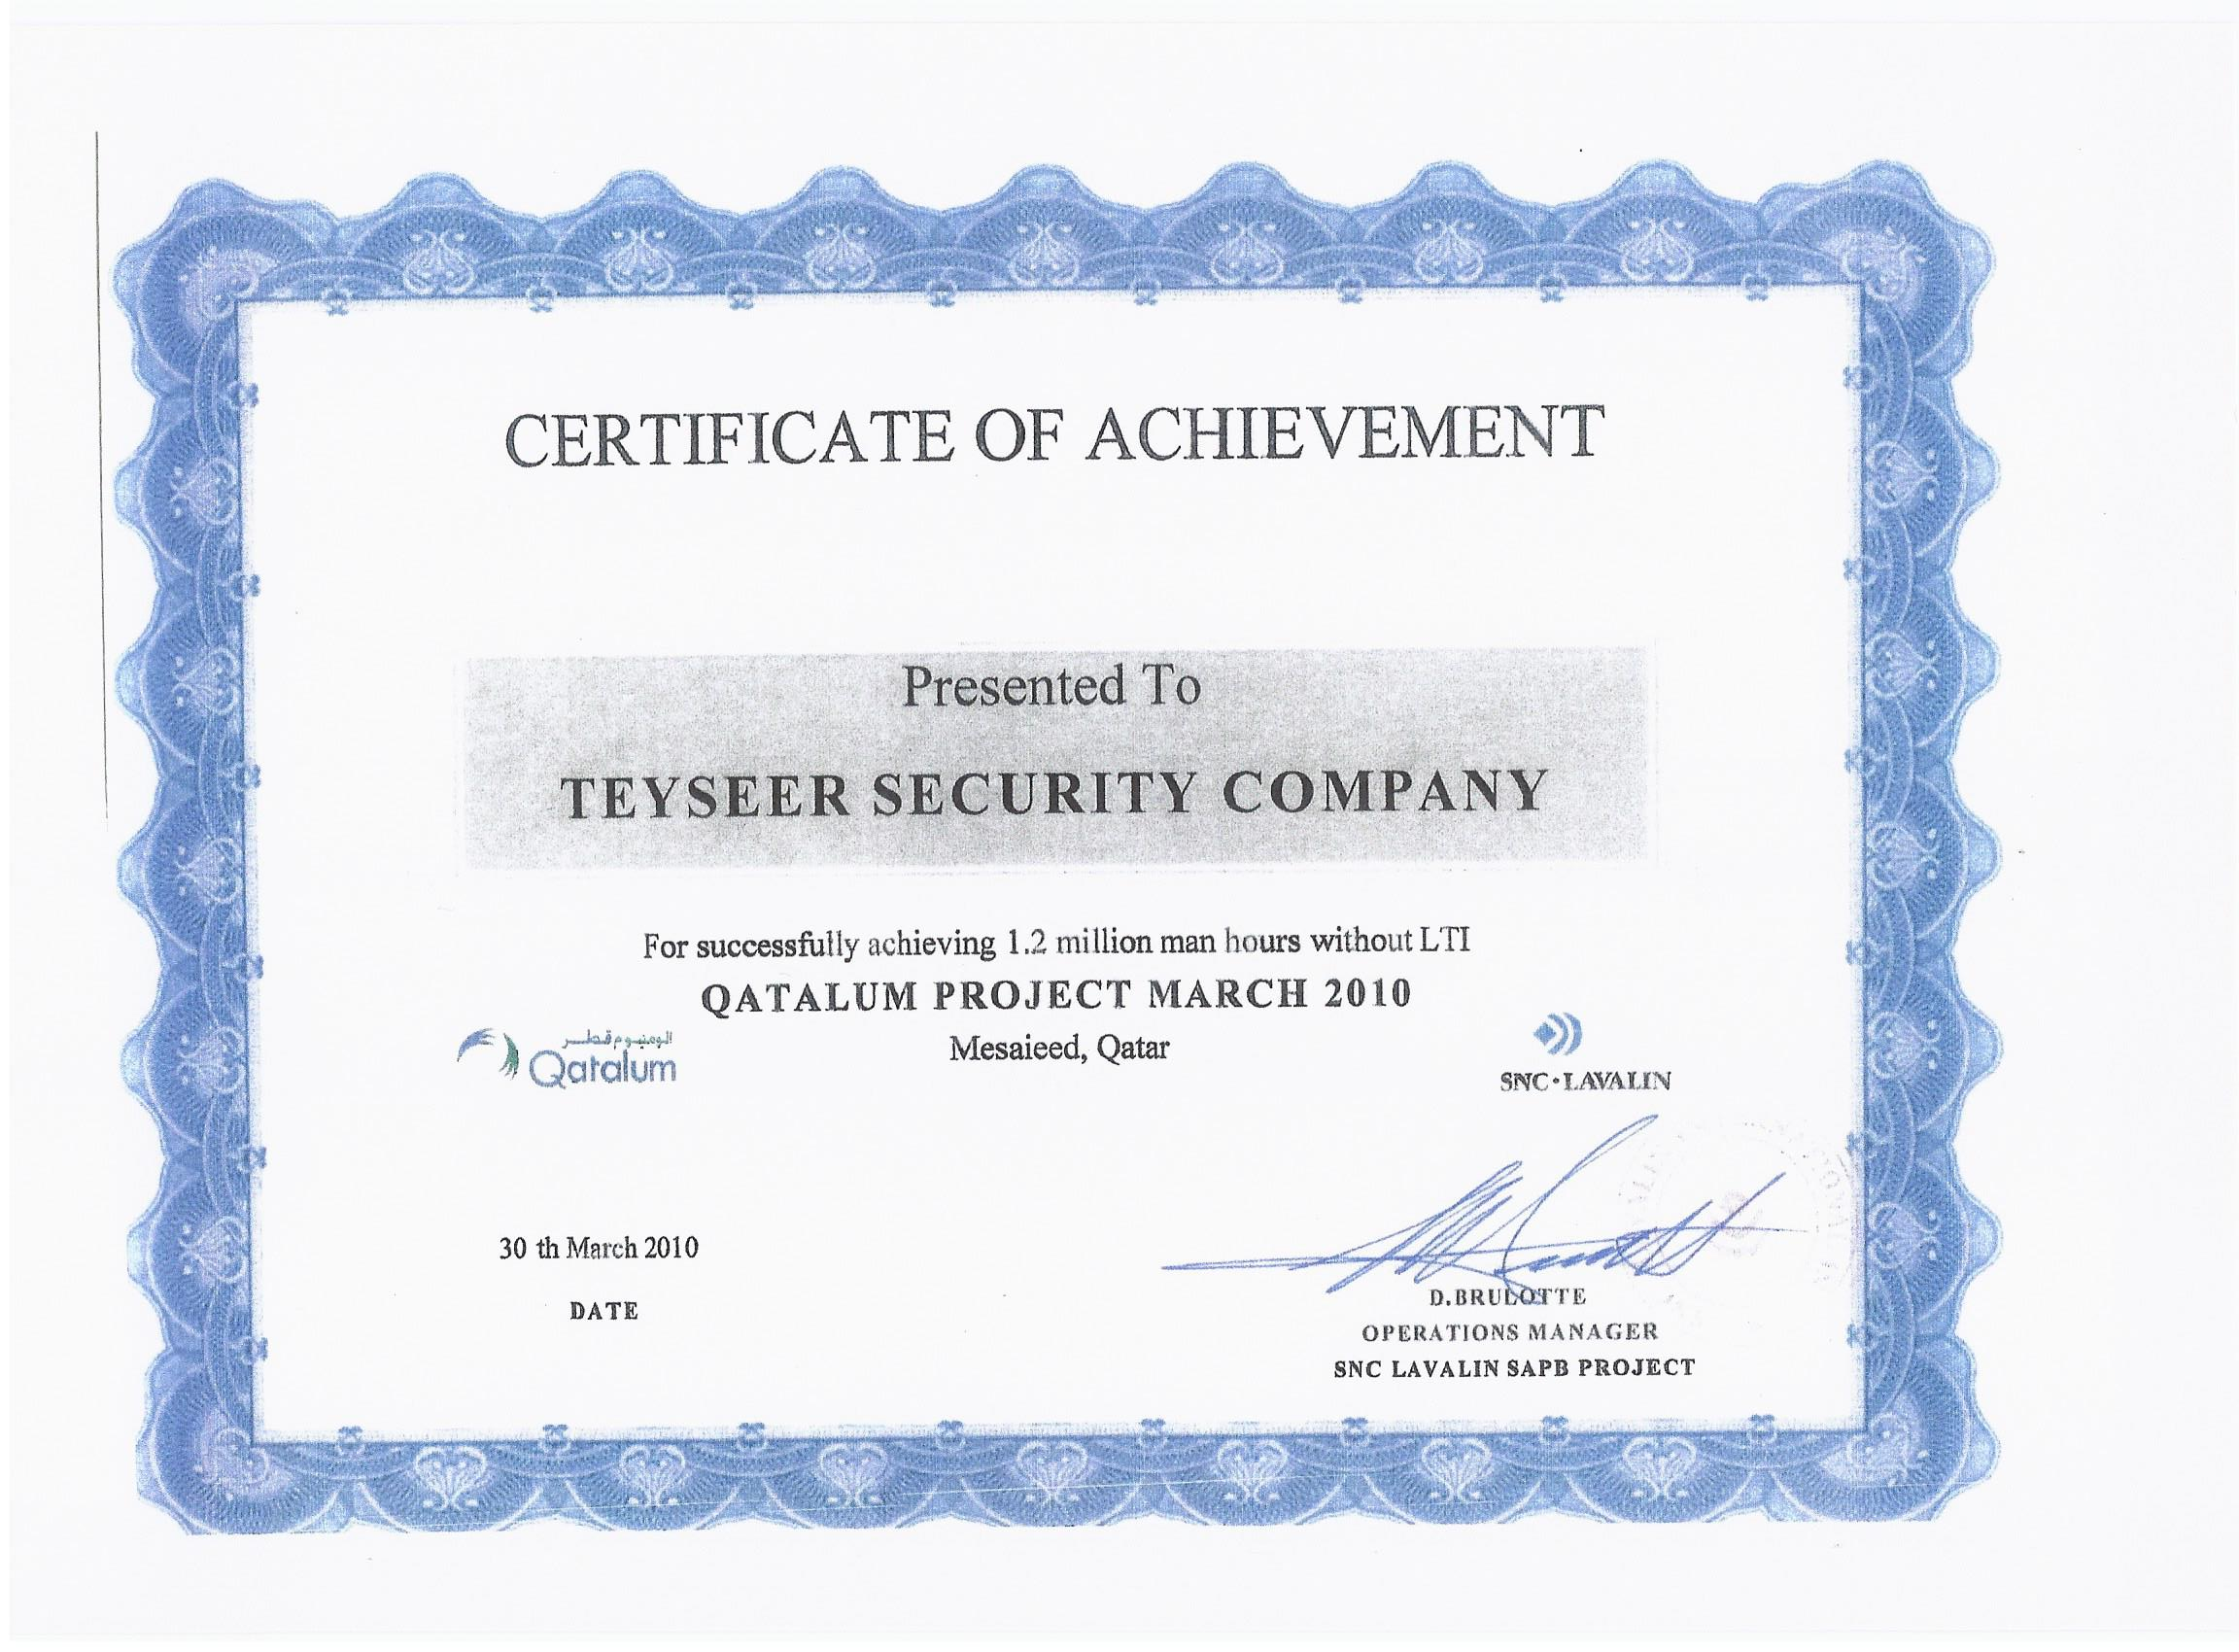 Awards recognitions teyseer security awards recognitions certificate of achievement 1betcityfo Choice Image